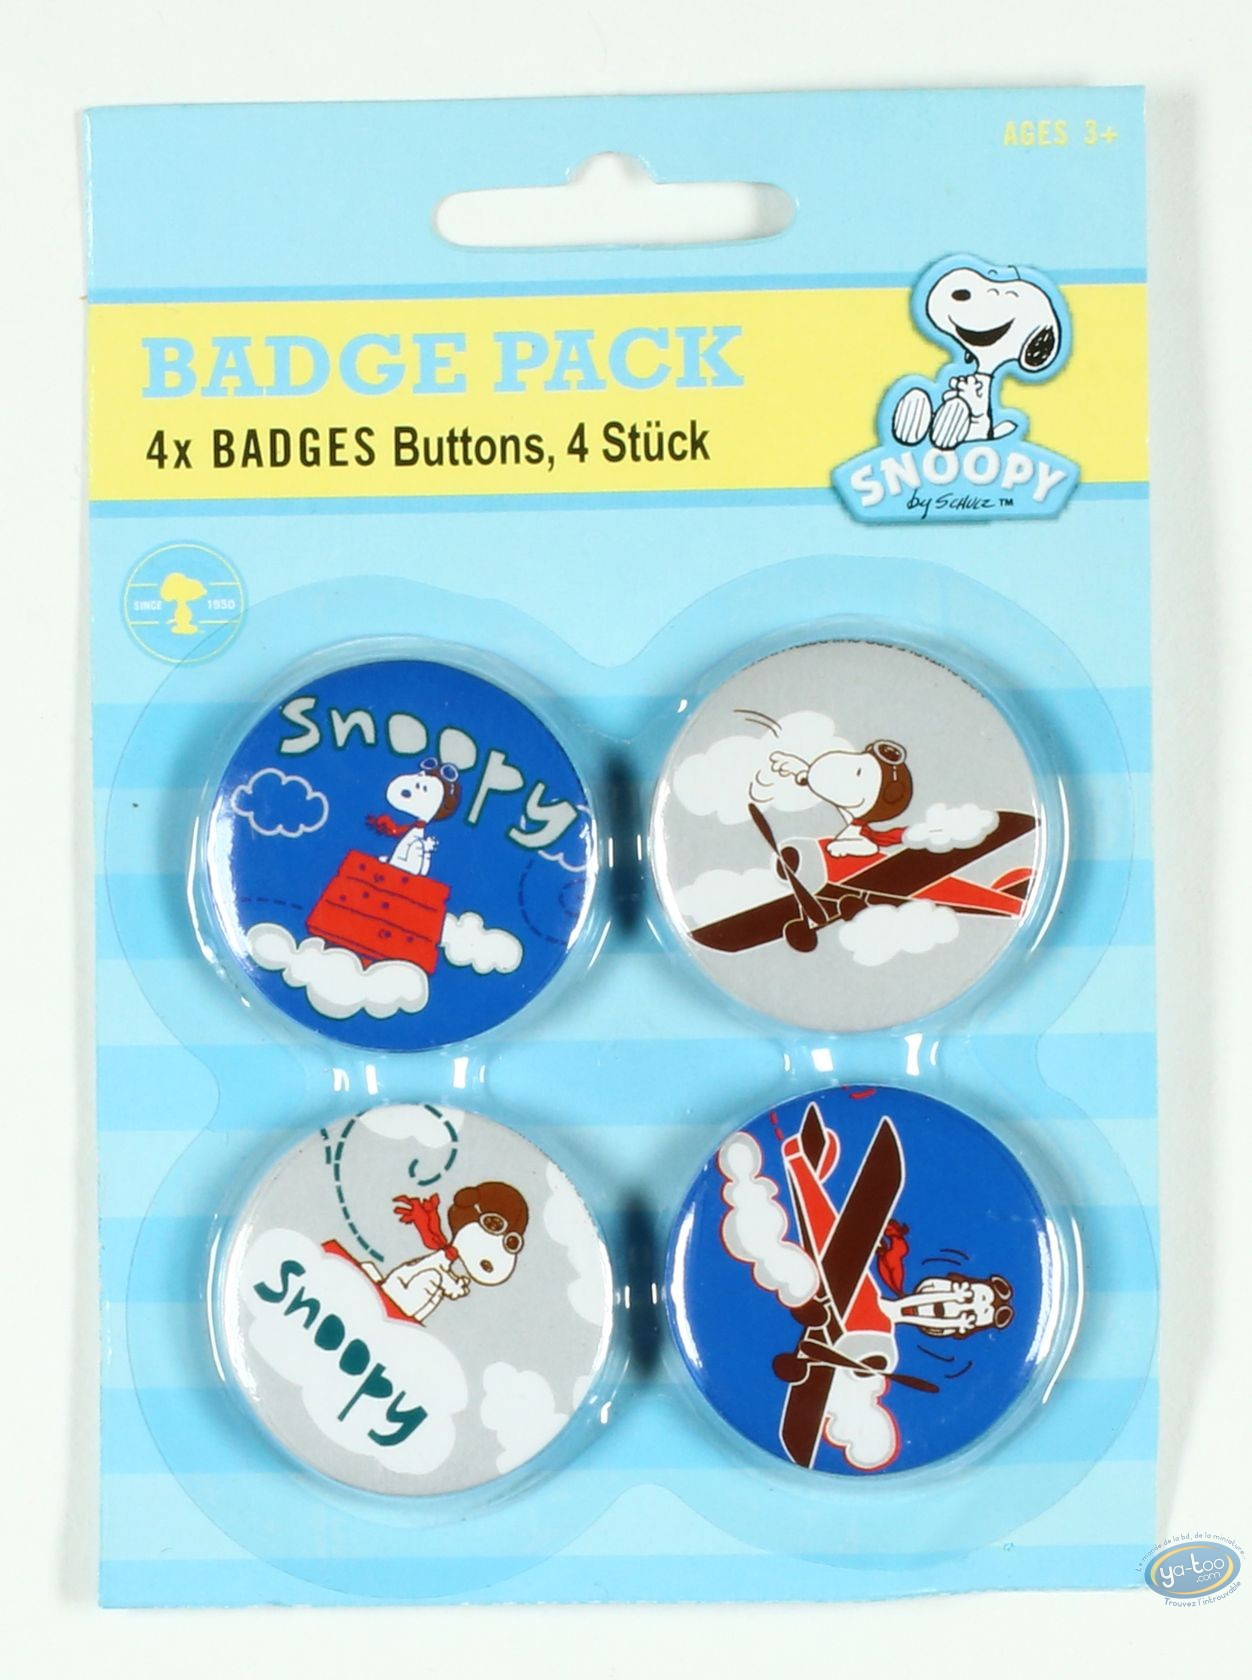 Pin's, Snoopy : 4 badges Snoopy dans les airs